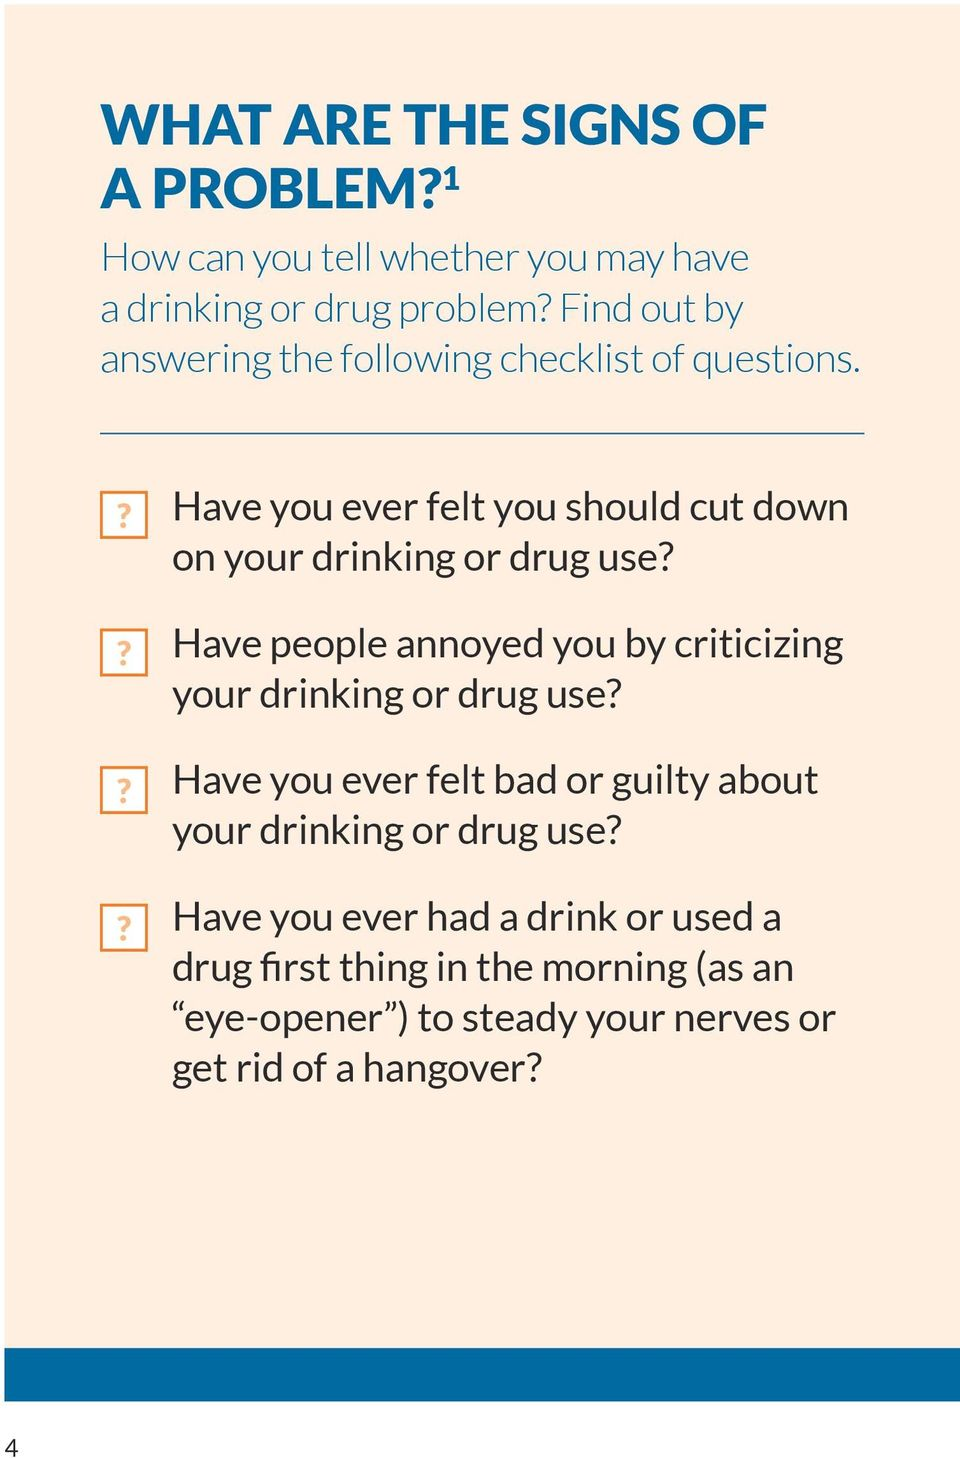 ???? Have you ever felt you should cut down on your drinking or drug use?